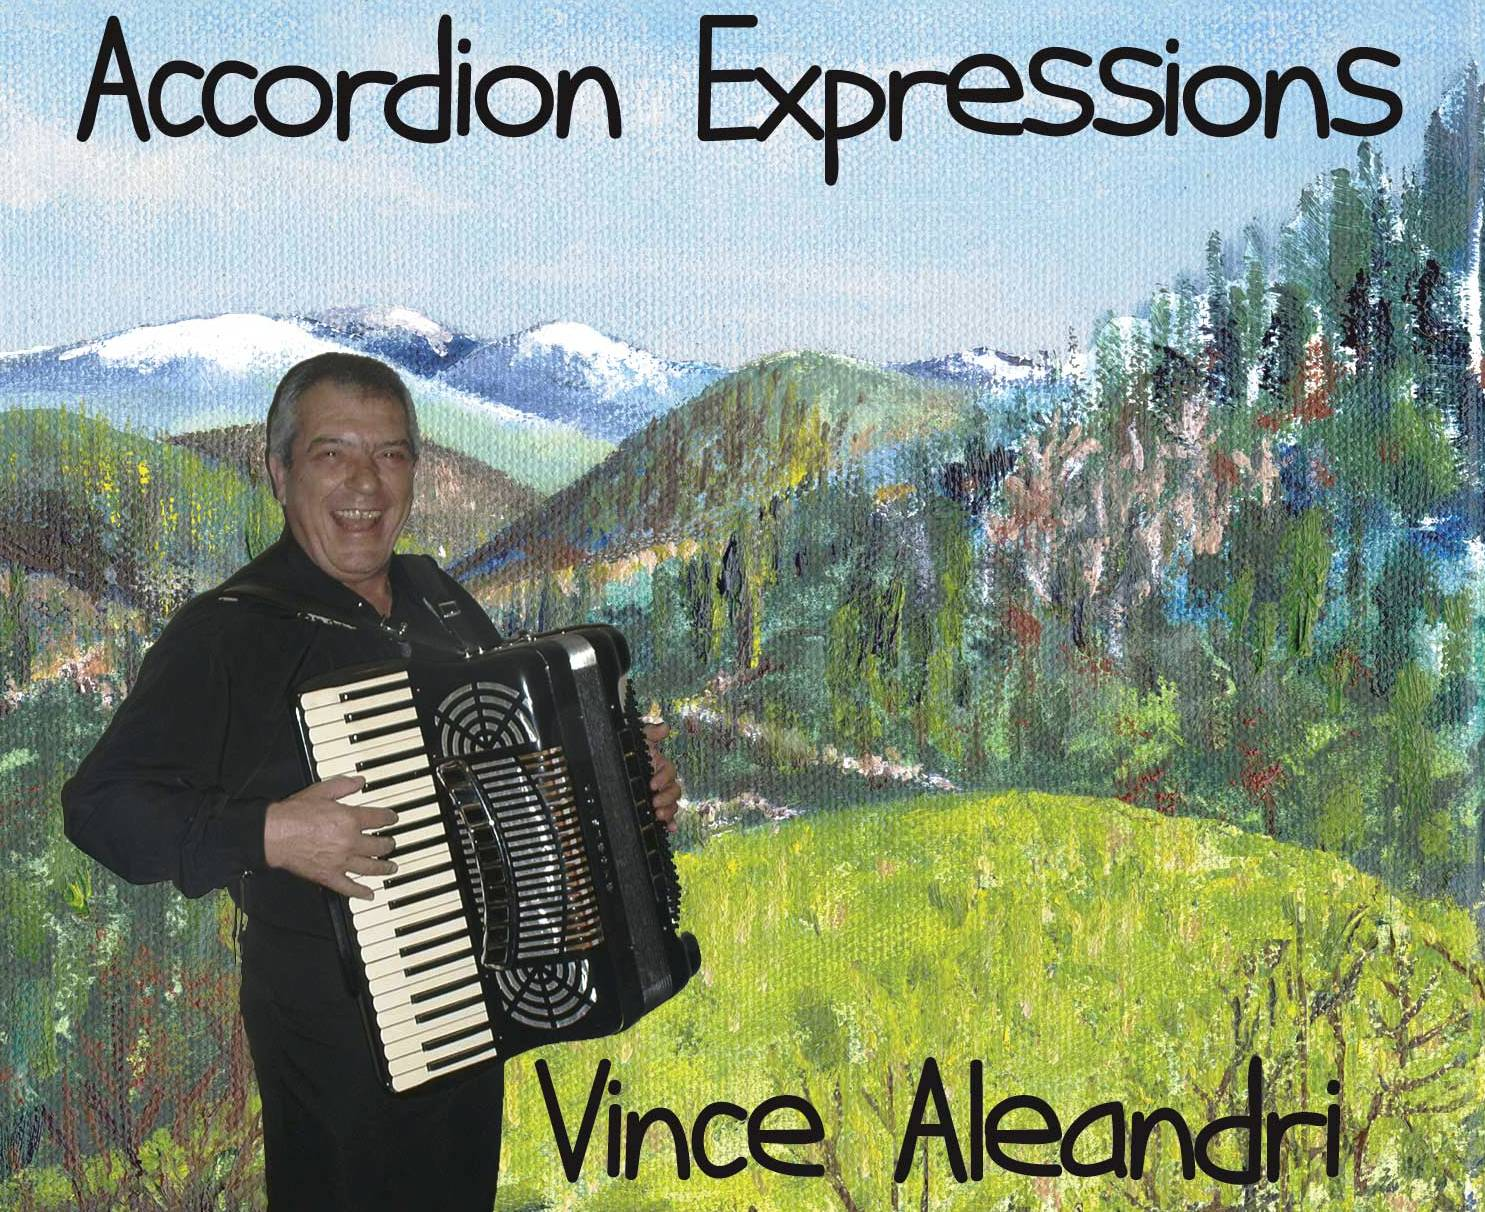 Atlanta Accordian Player vince aleandri